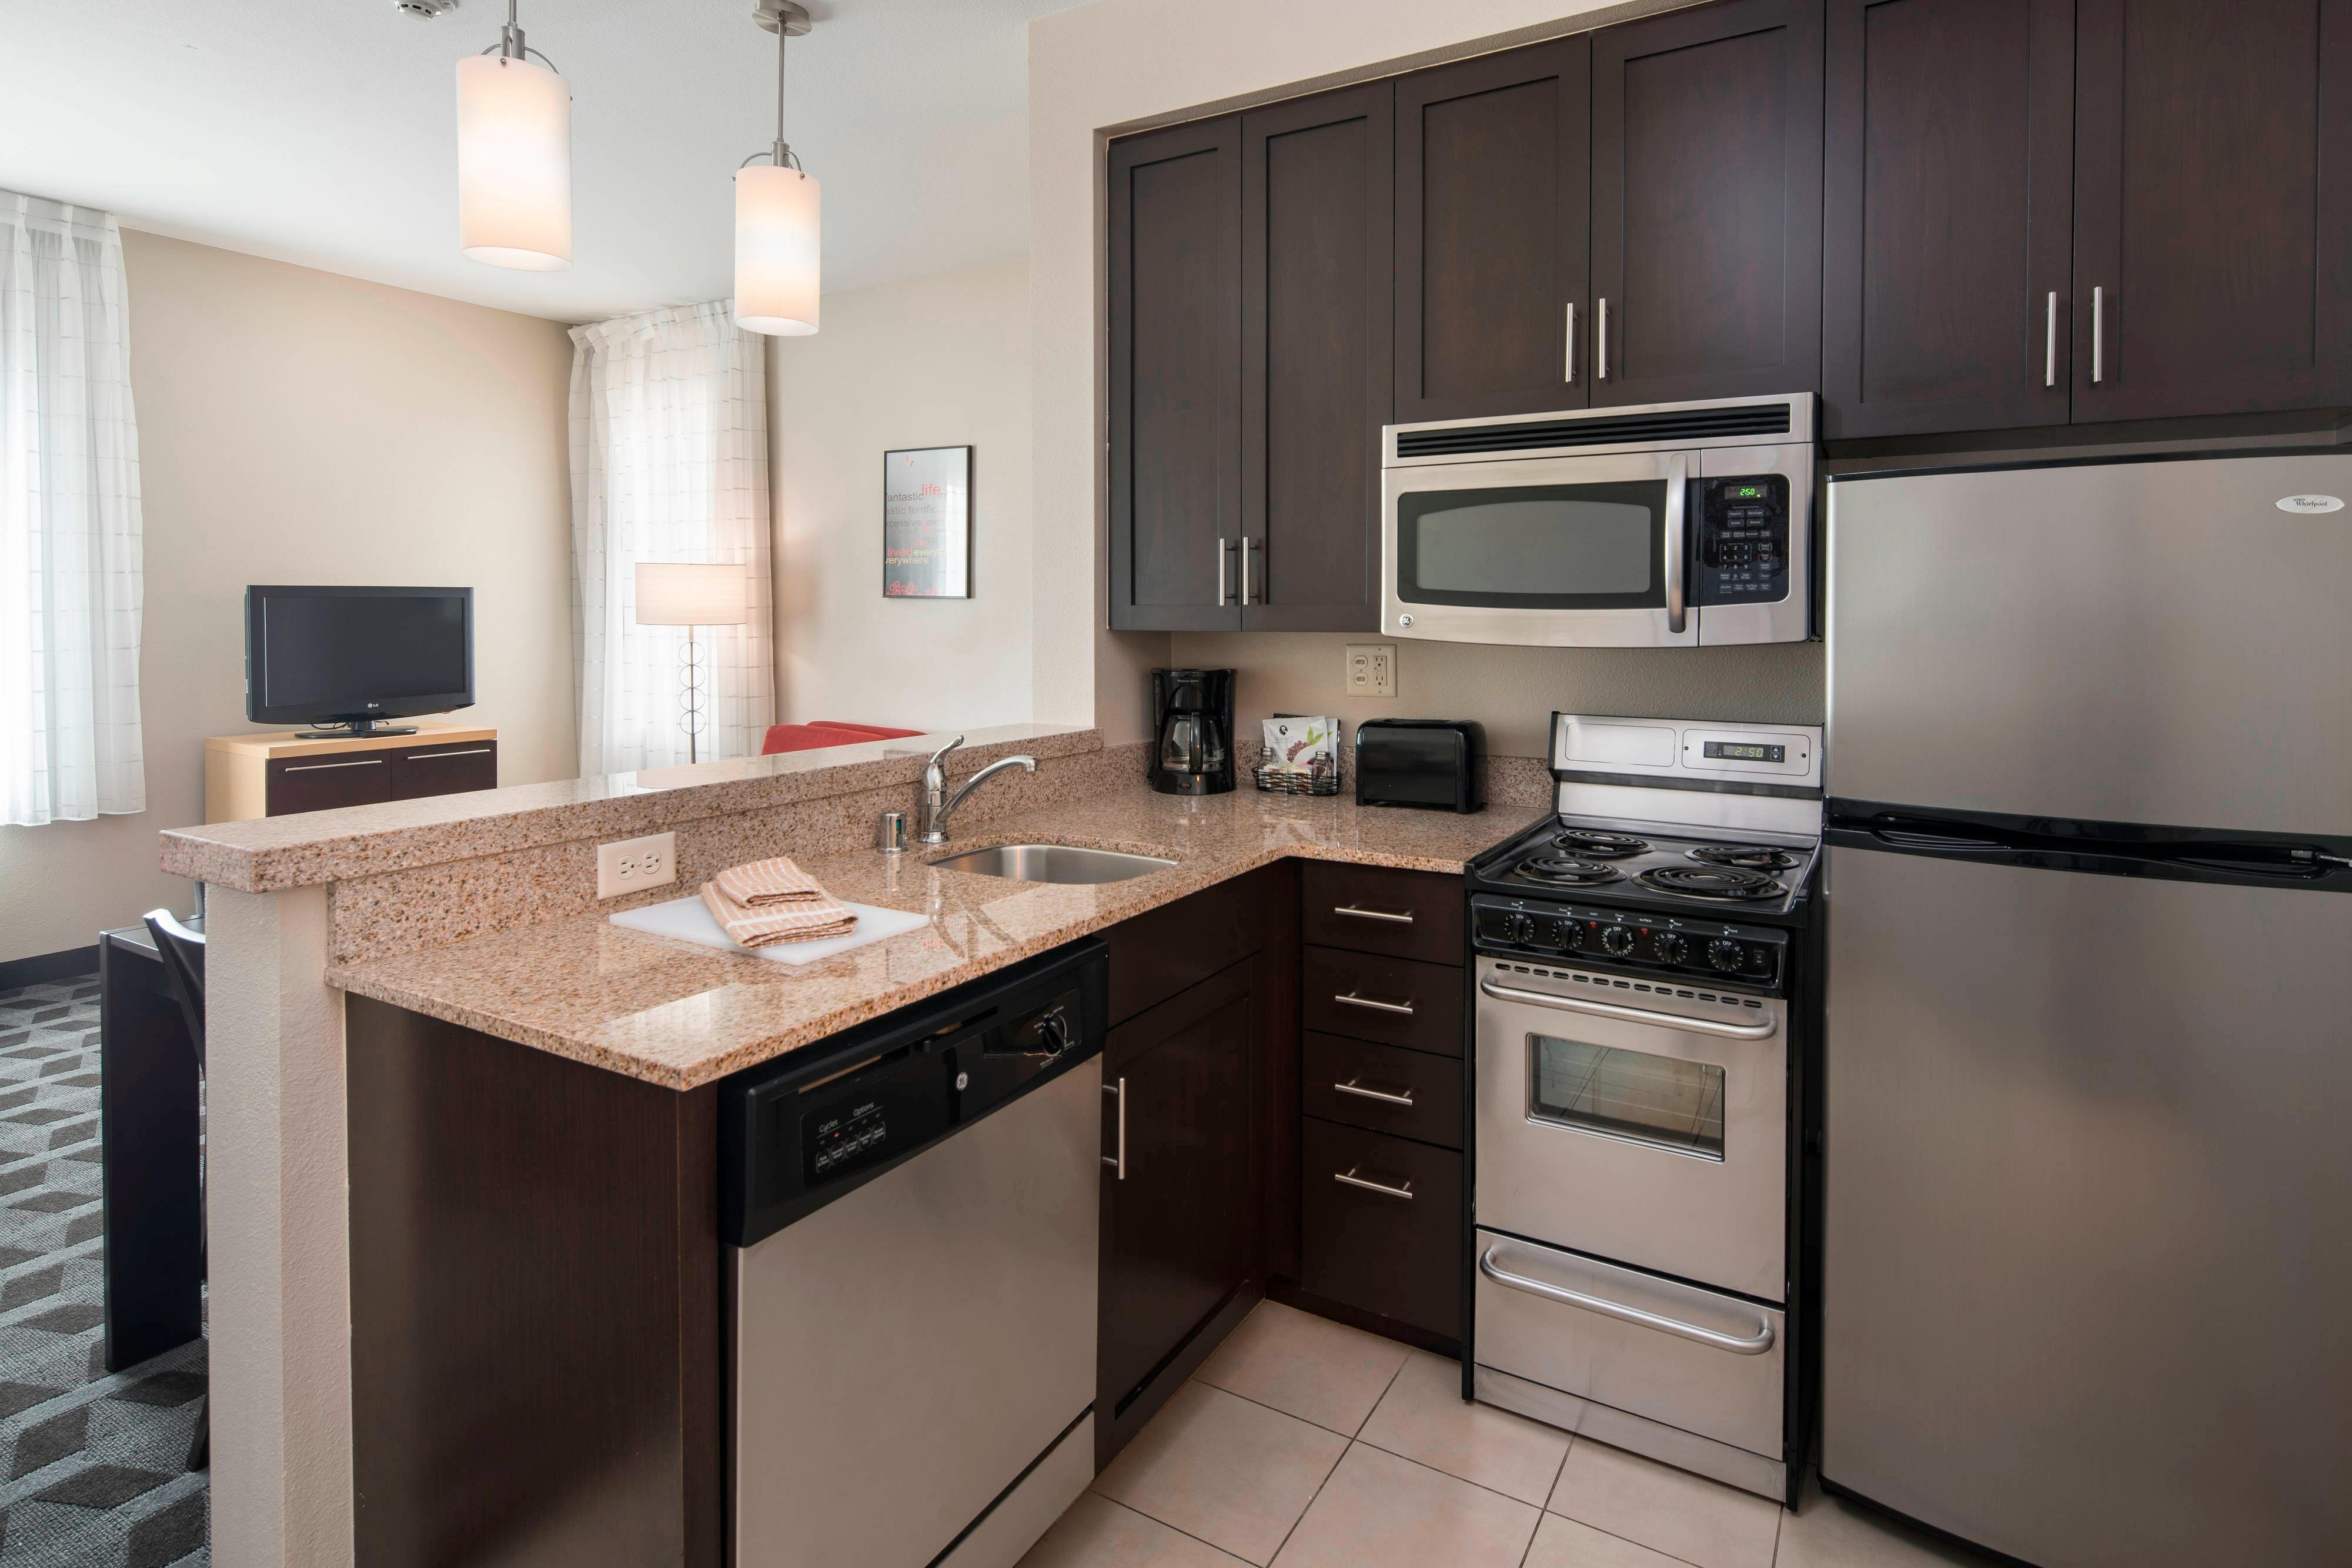 Carlsbad hotel suites hotel suites carlsbad carlsbad - Cheap 2 bedroom suites in miami beach ...